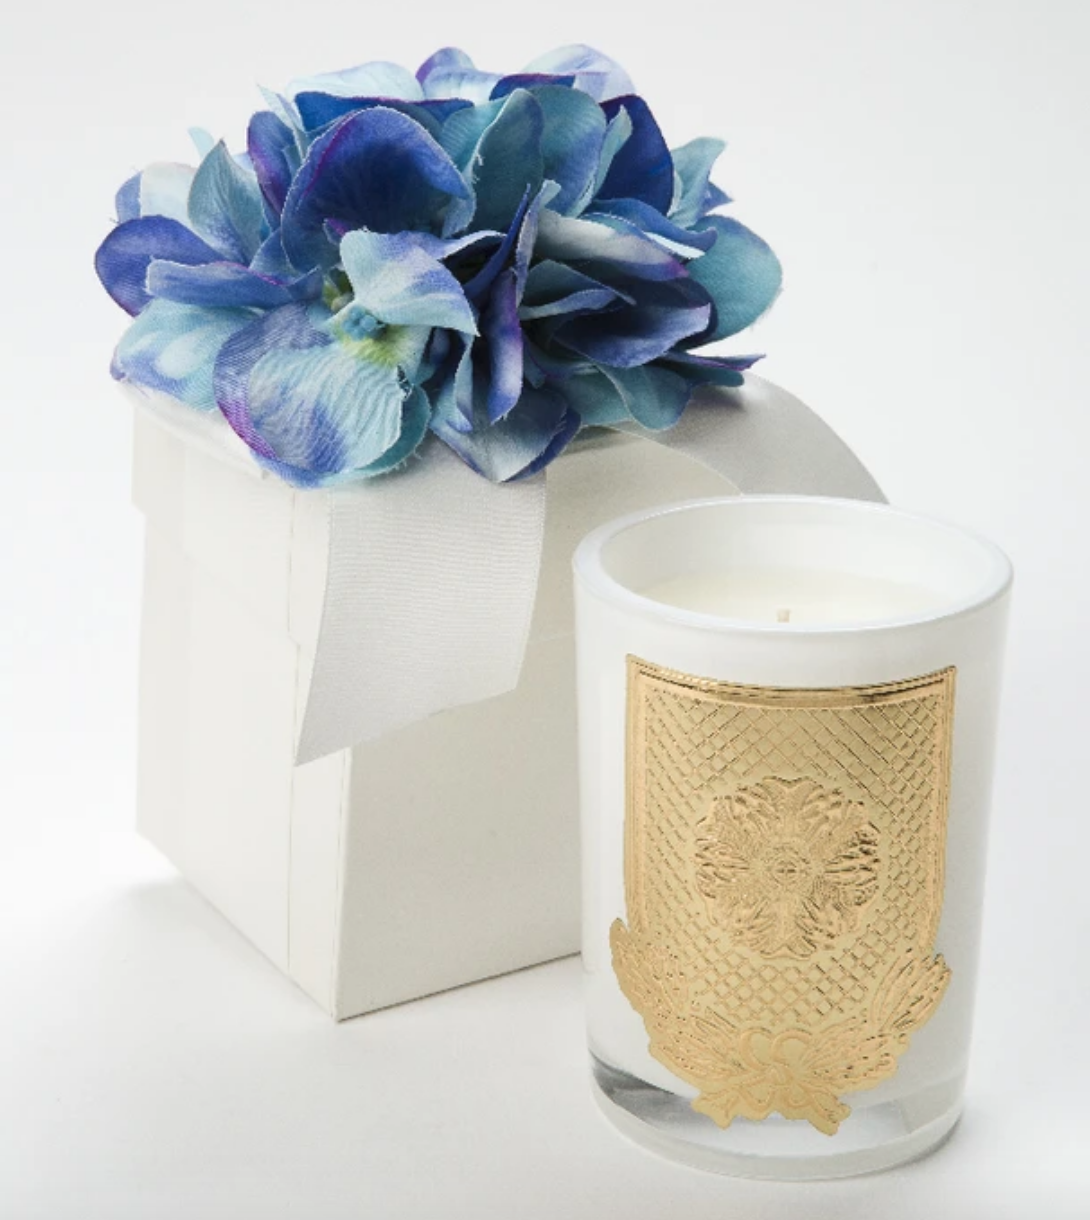 8oz Lux Candle